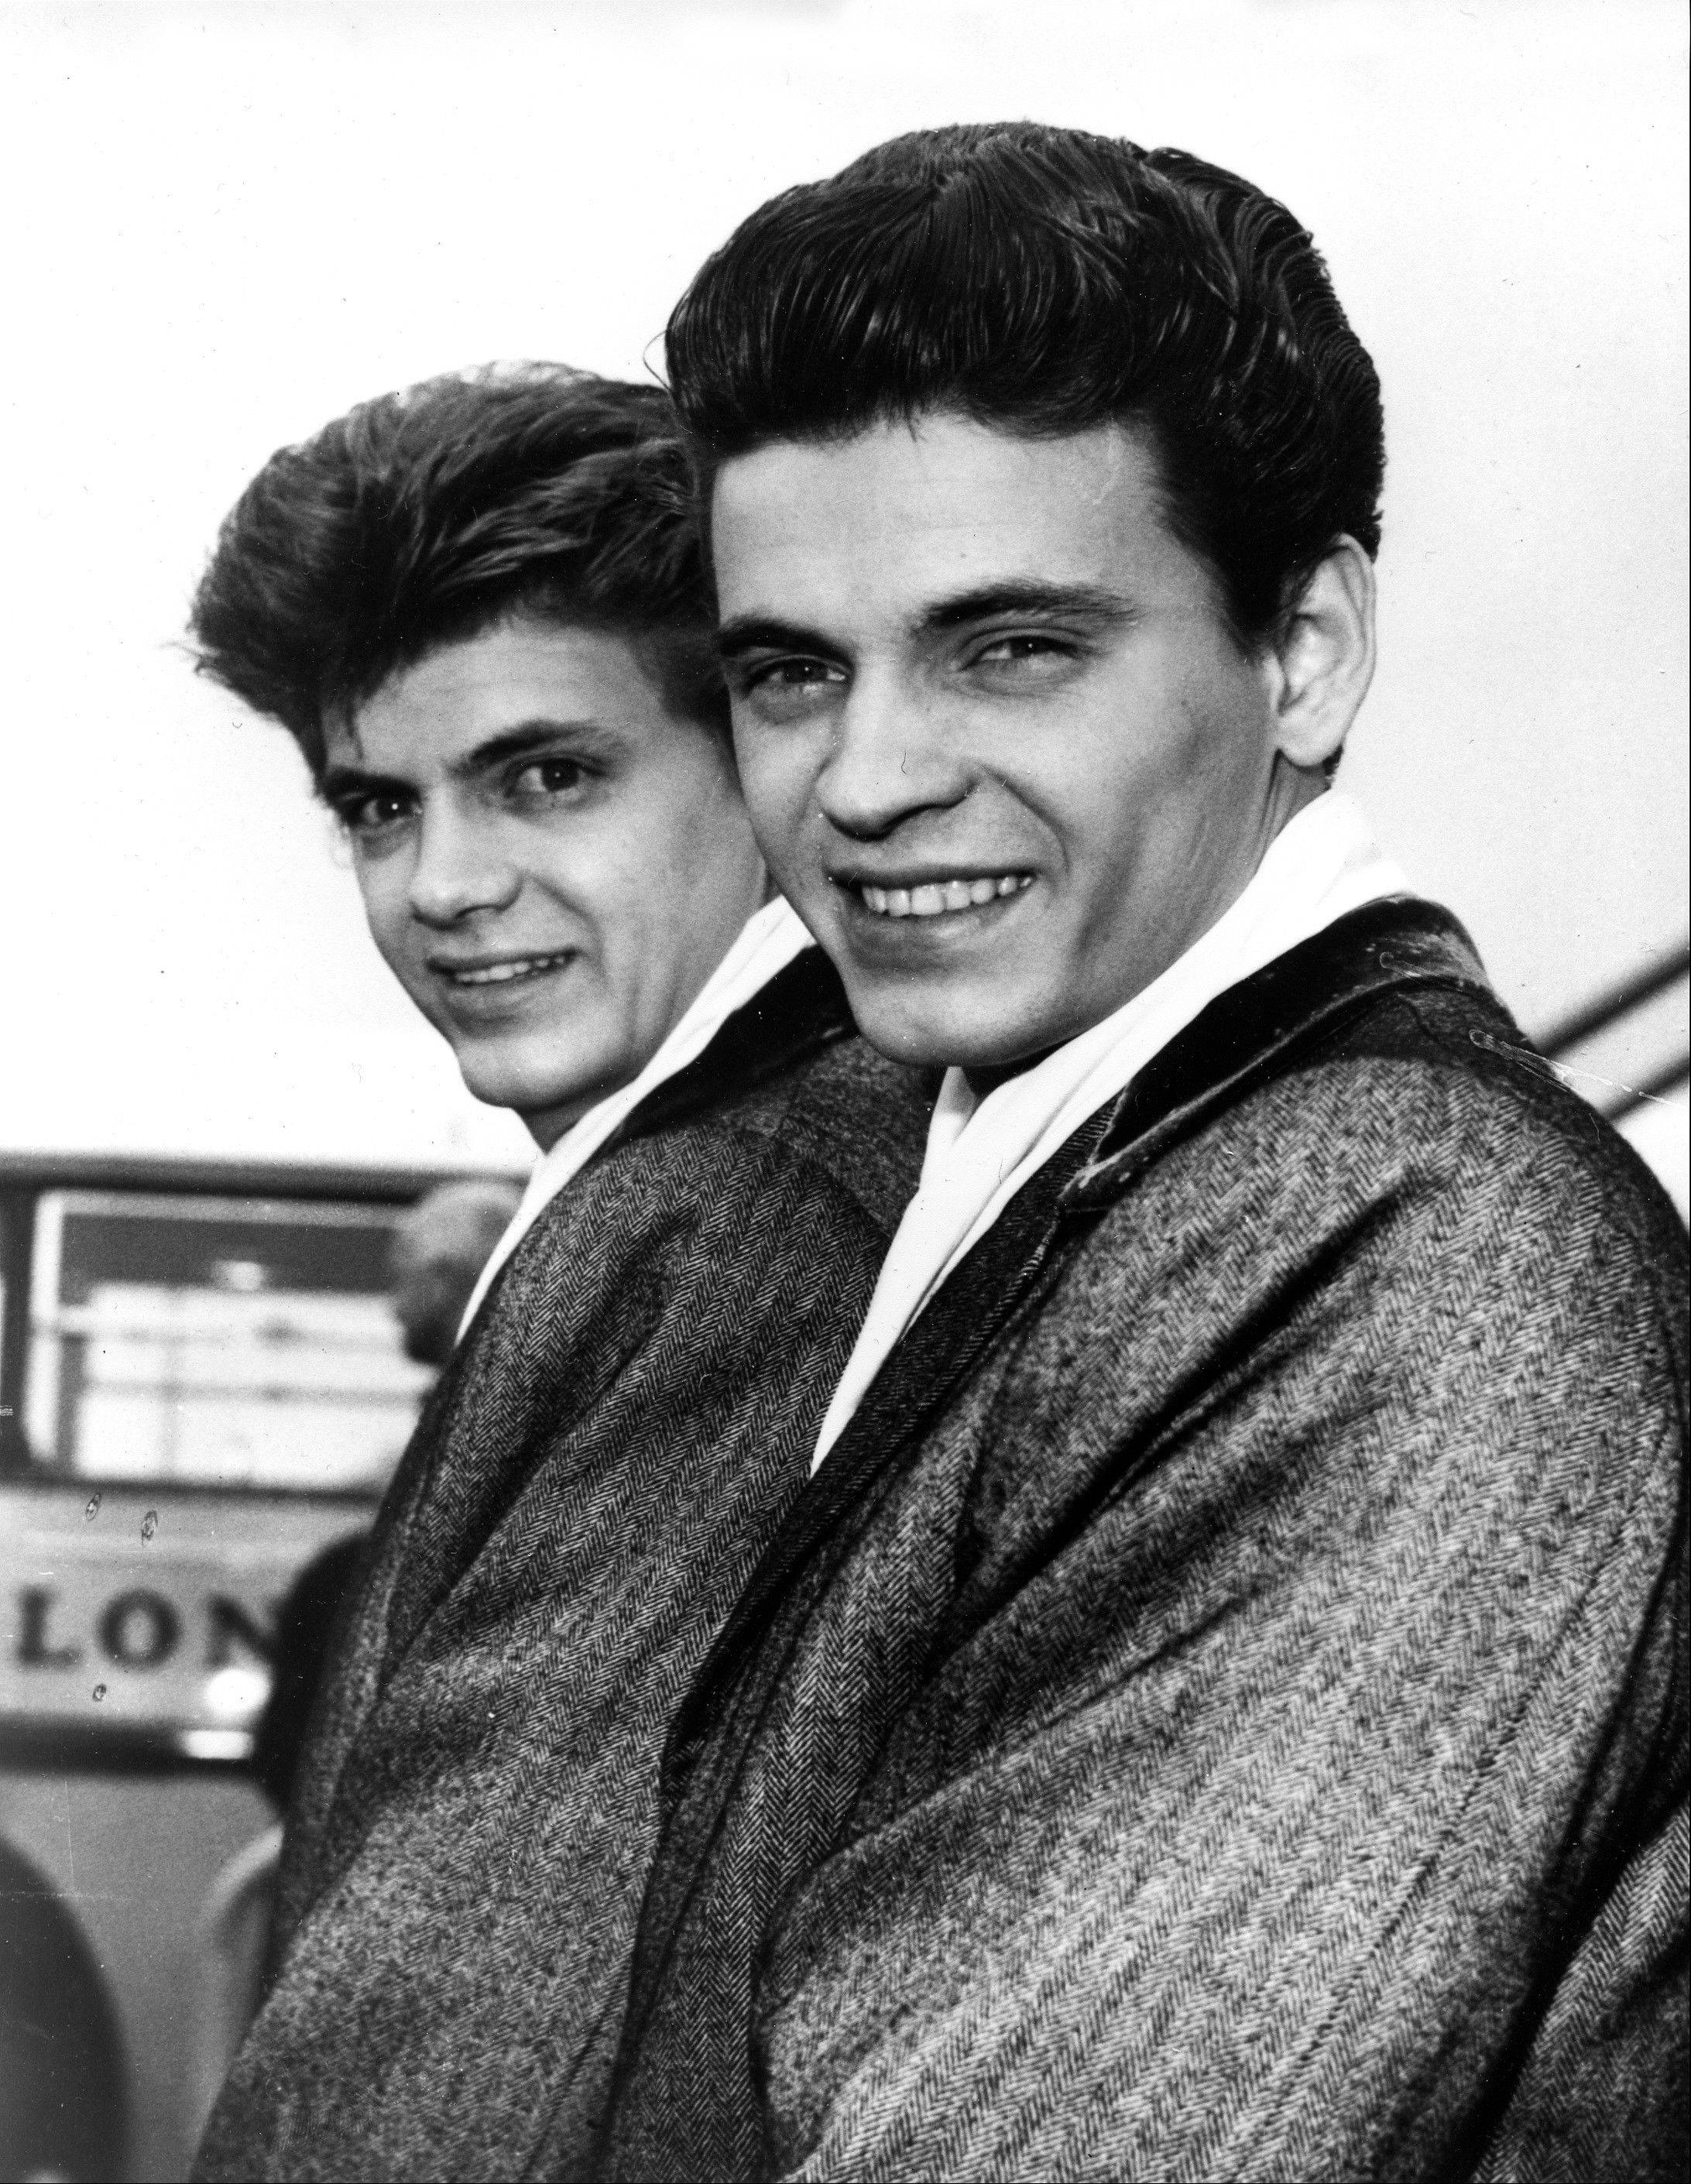 In this April 1, 1960 file photo, Phil, left, and Don of the Everly Brothers arrive at London Airport from New York to begin their European tour. Everly, who with his brother Don formed an influential harmony duo that touched the hearts and sparked the imaginations of rock �n� roll singers for decades, including the Beatles and Bob Dylan, died Friday, Jan. 3, 2014. He was 74. Everly died of chronic obstructive pulmonary disease at a Burbank hospital, said his son Jason Everly.